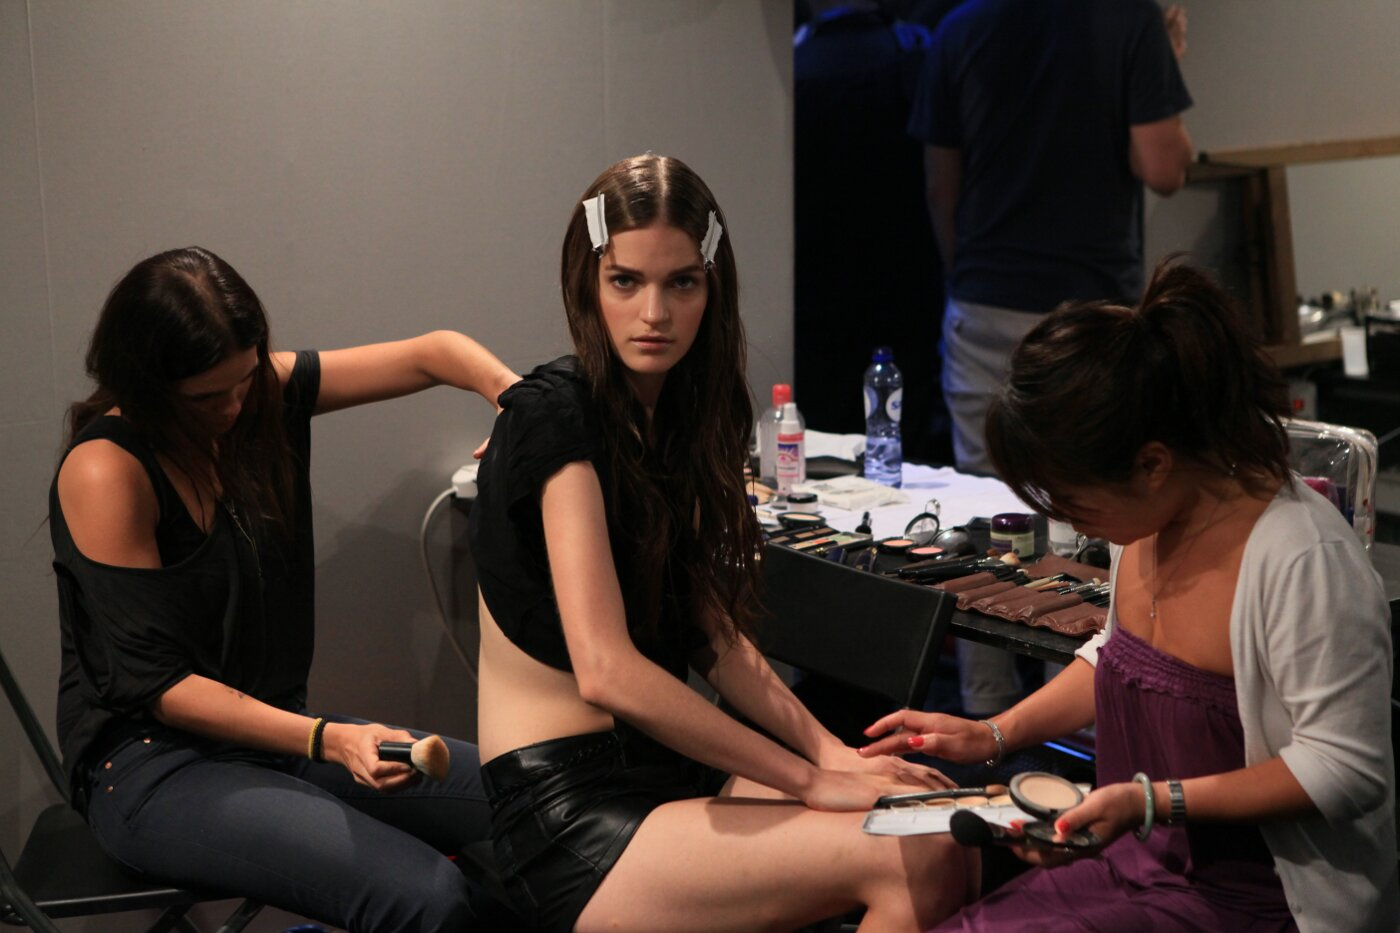 Backstage Alberta Ferretti Women